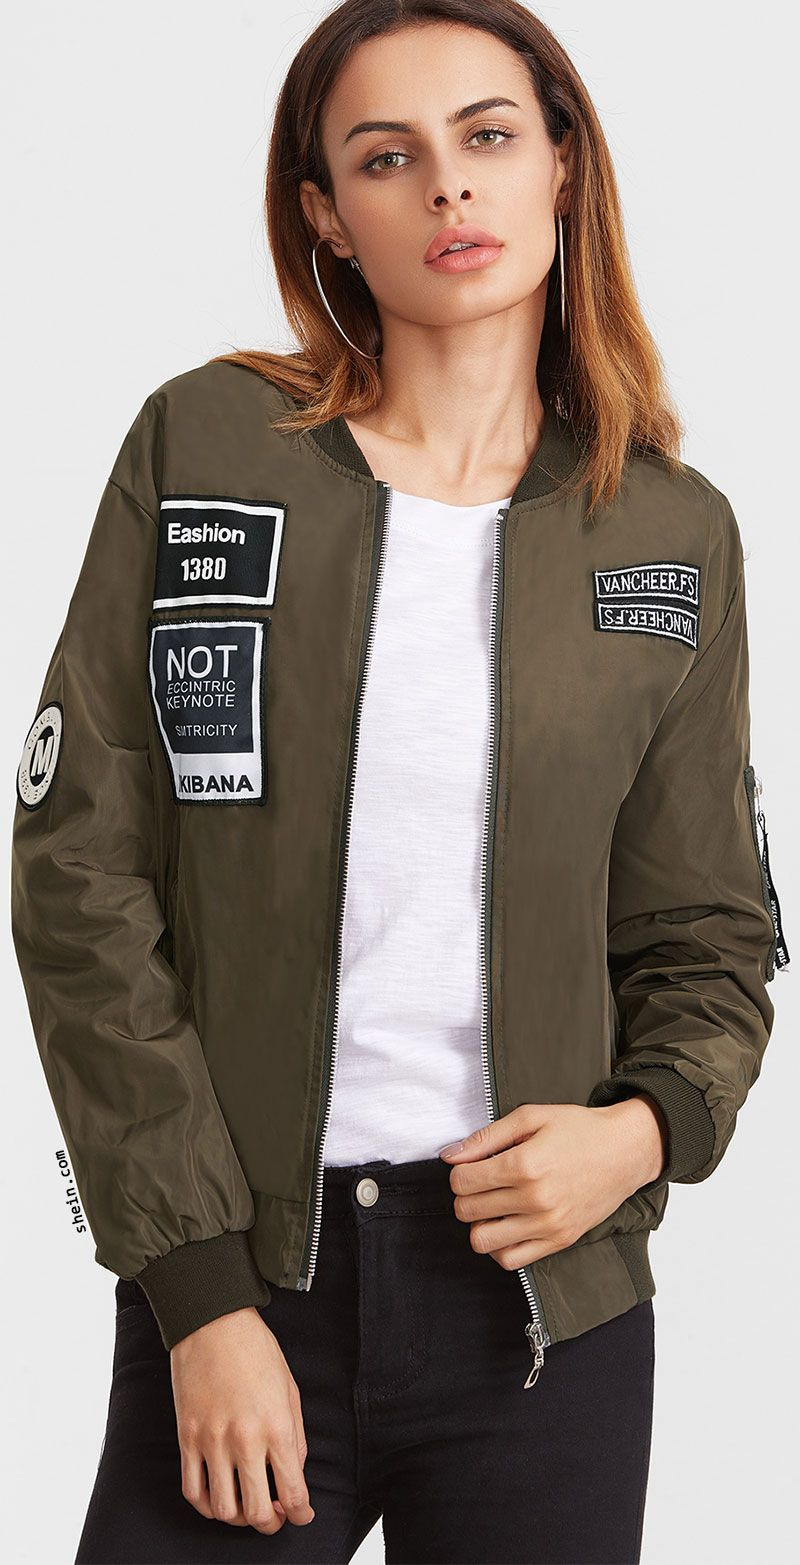 Embroidered Patch Zipper Flight Jacket Bomber Jacket Zipper Bomber Jackets [ 1565 x 800 Pixel ]